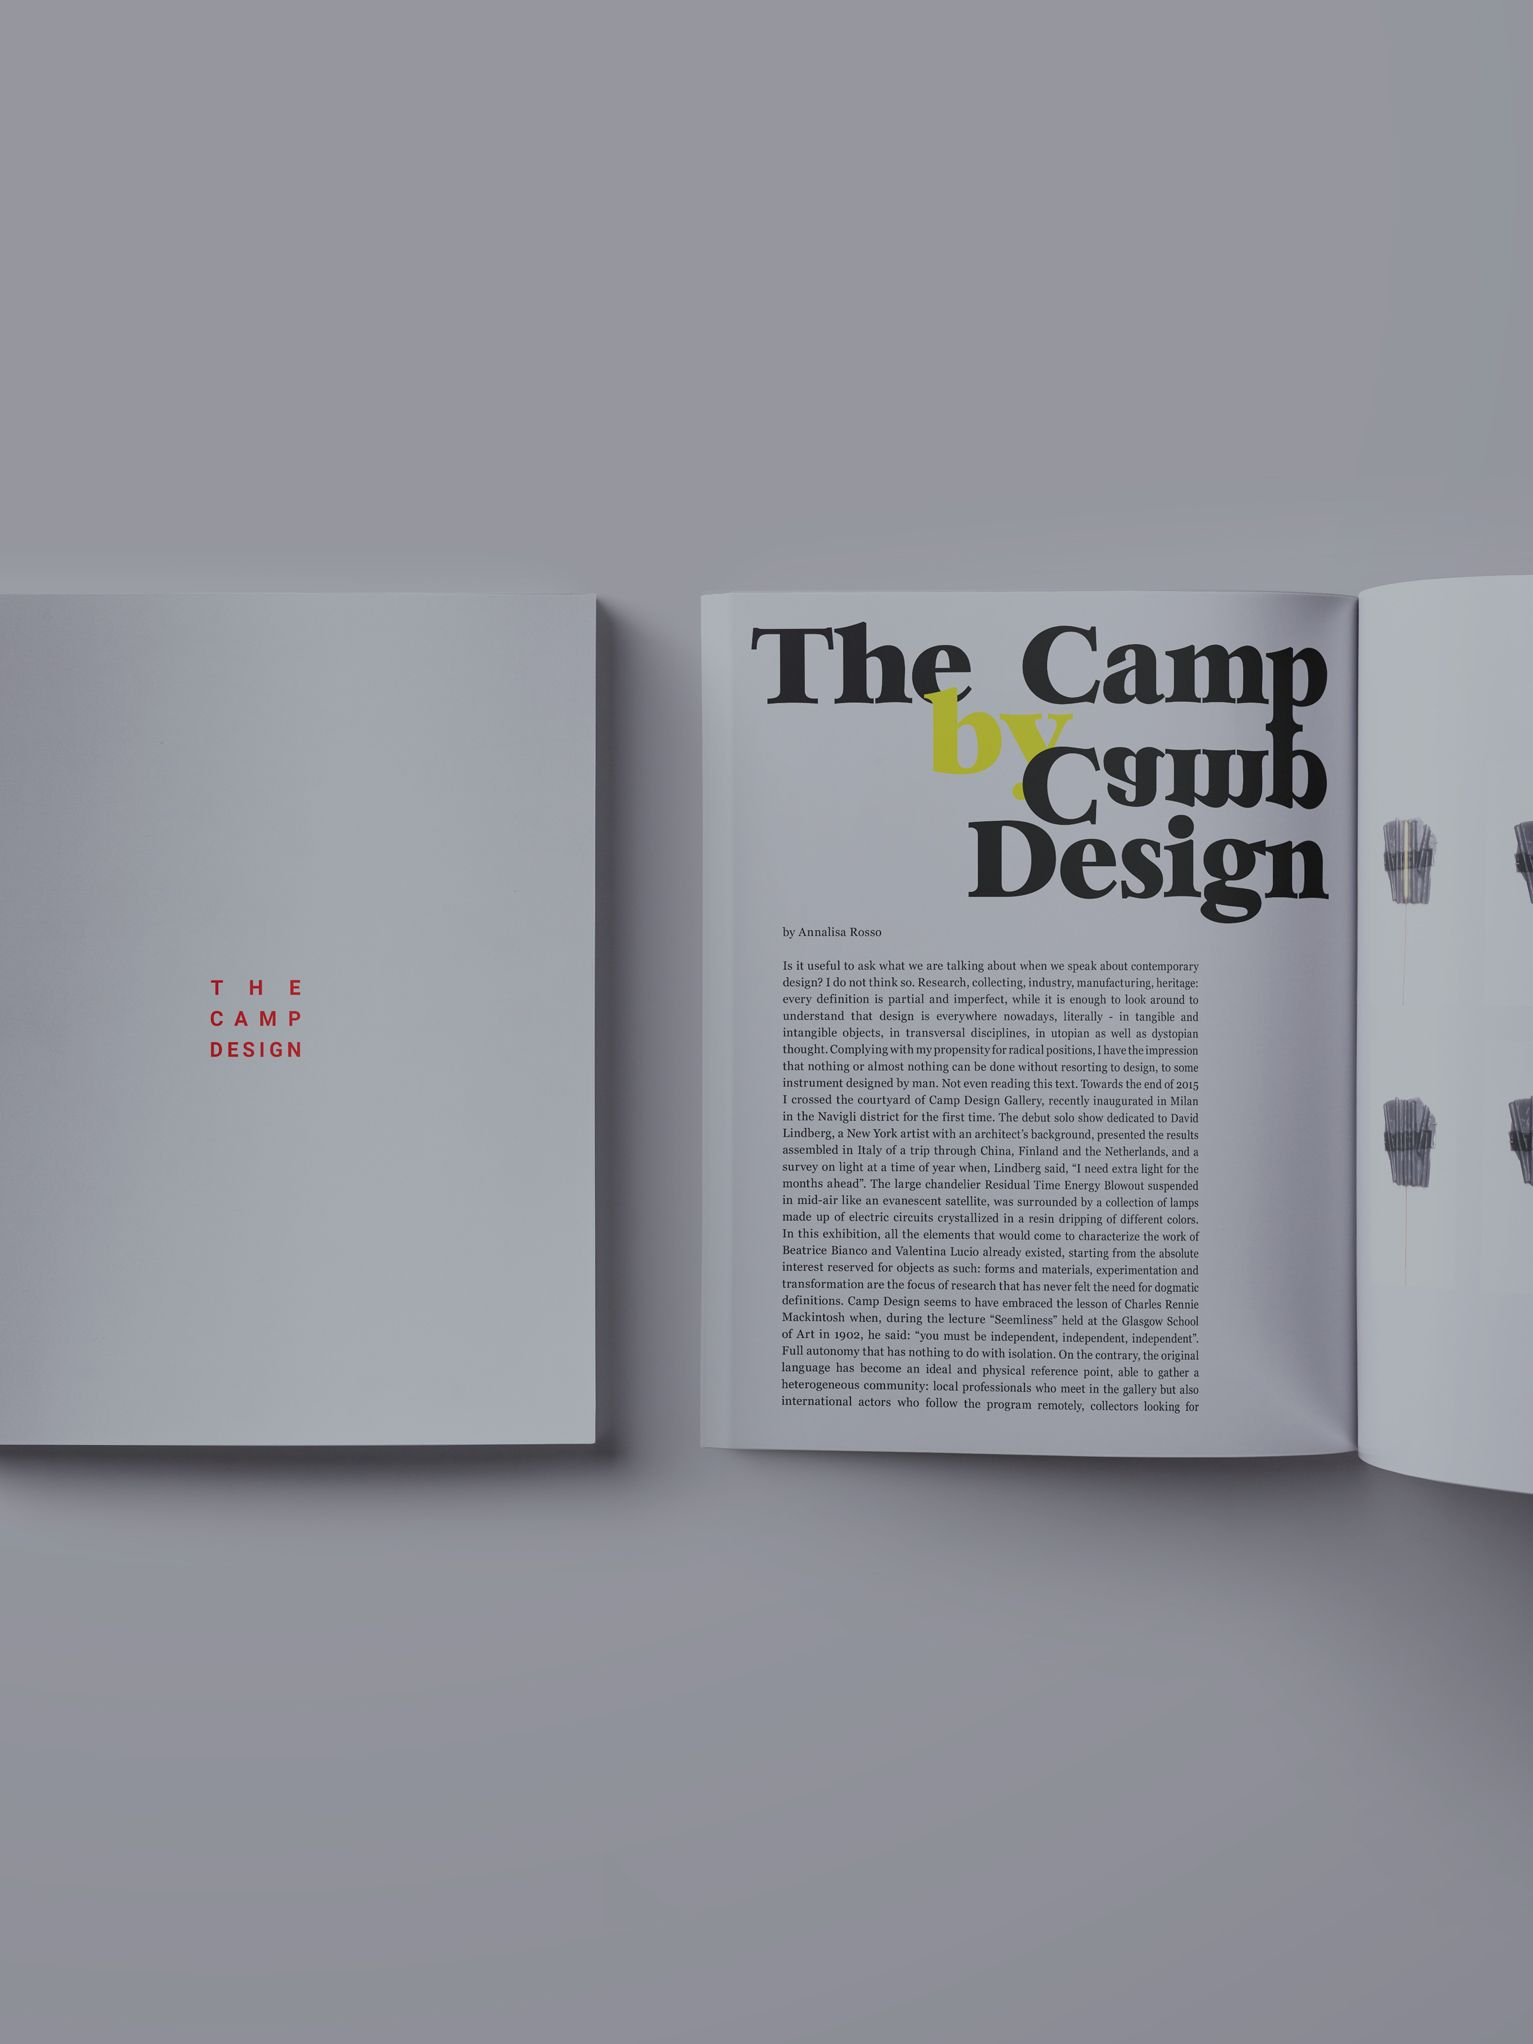 THE-CAMP-DESIGN-book